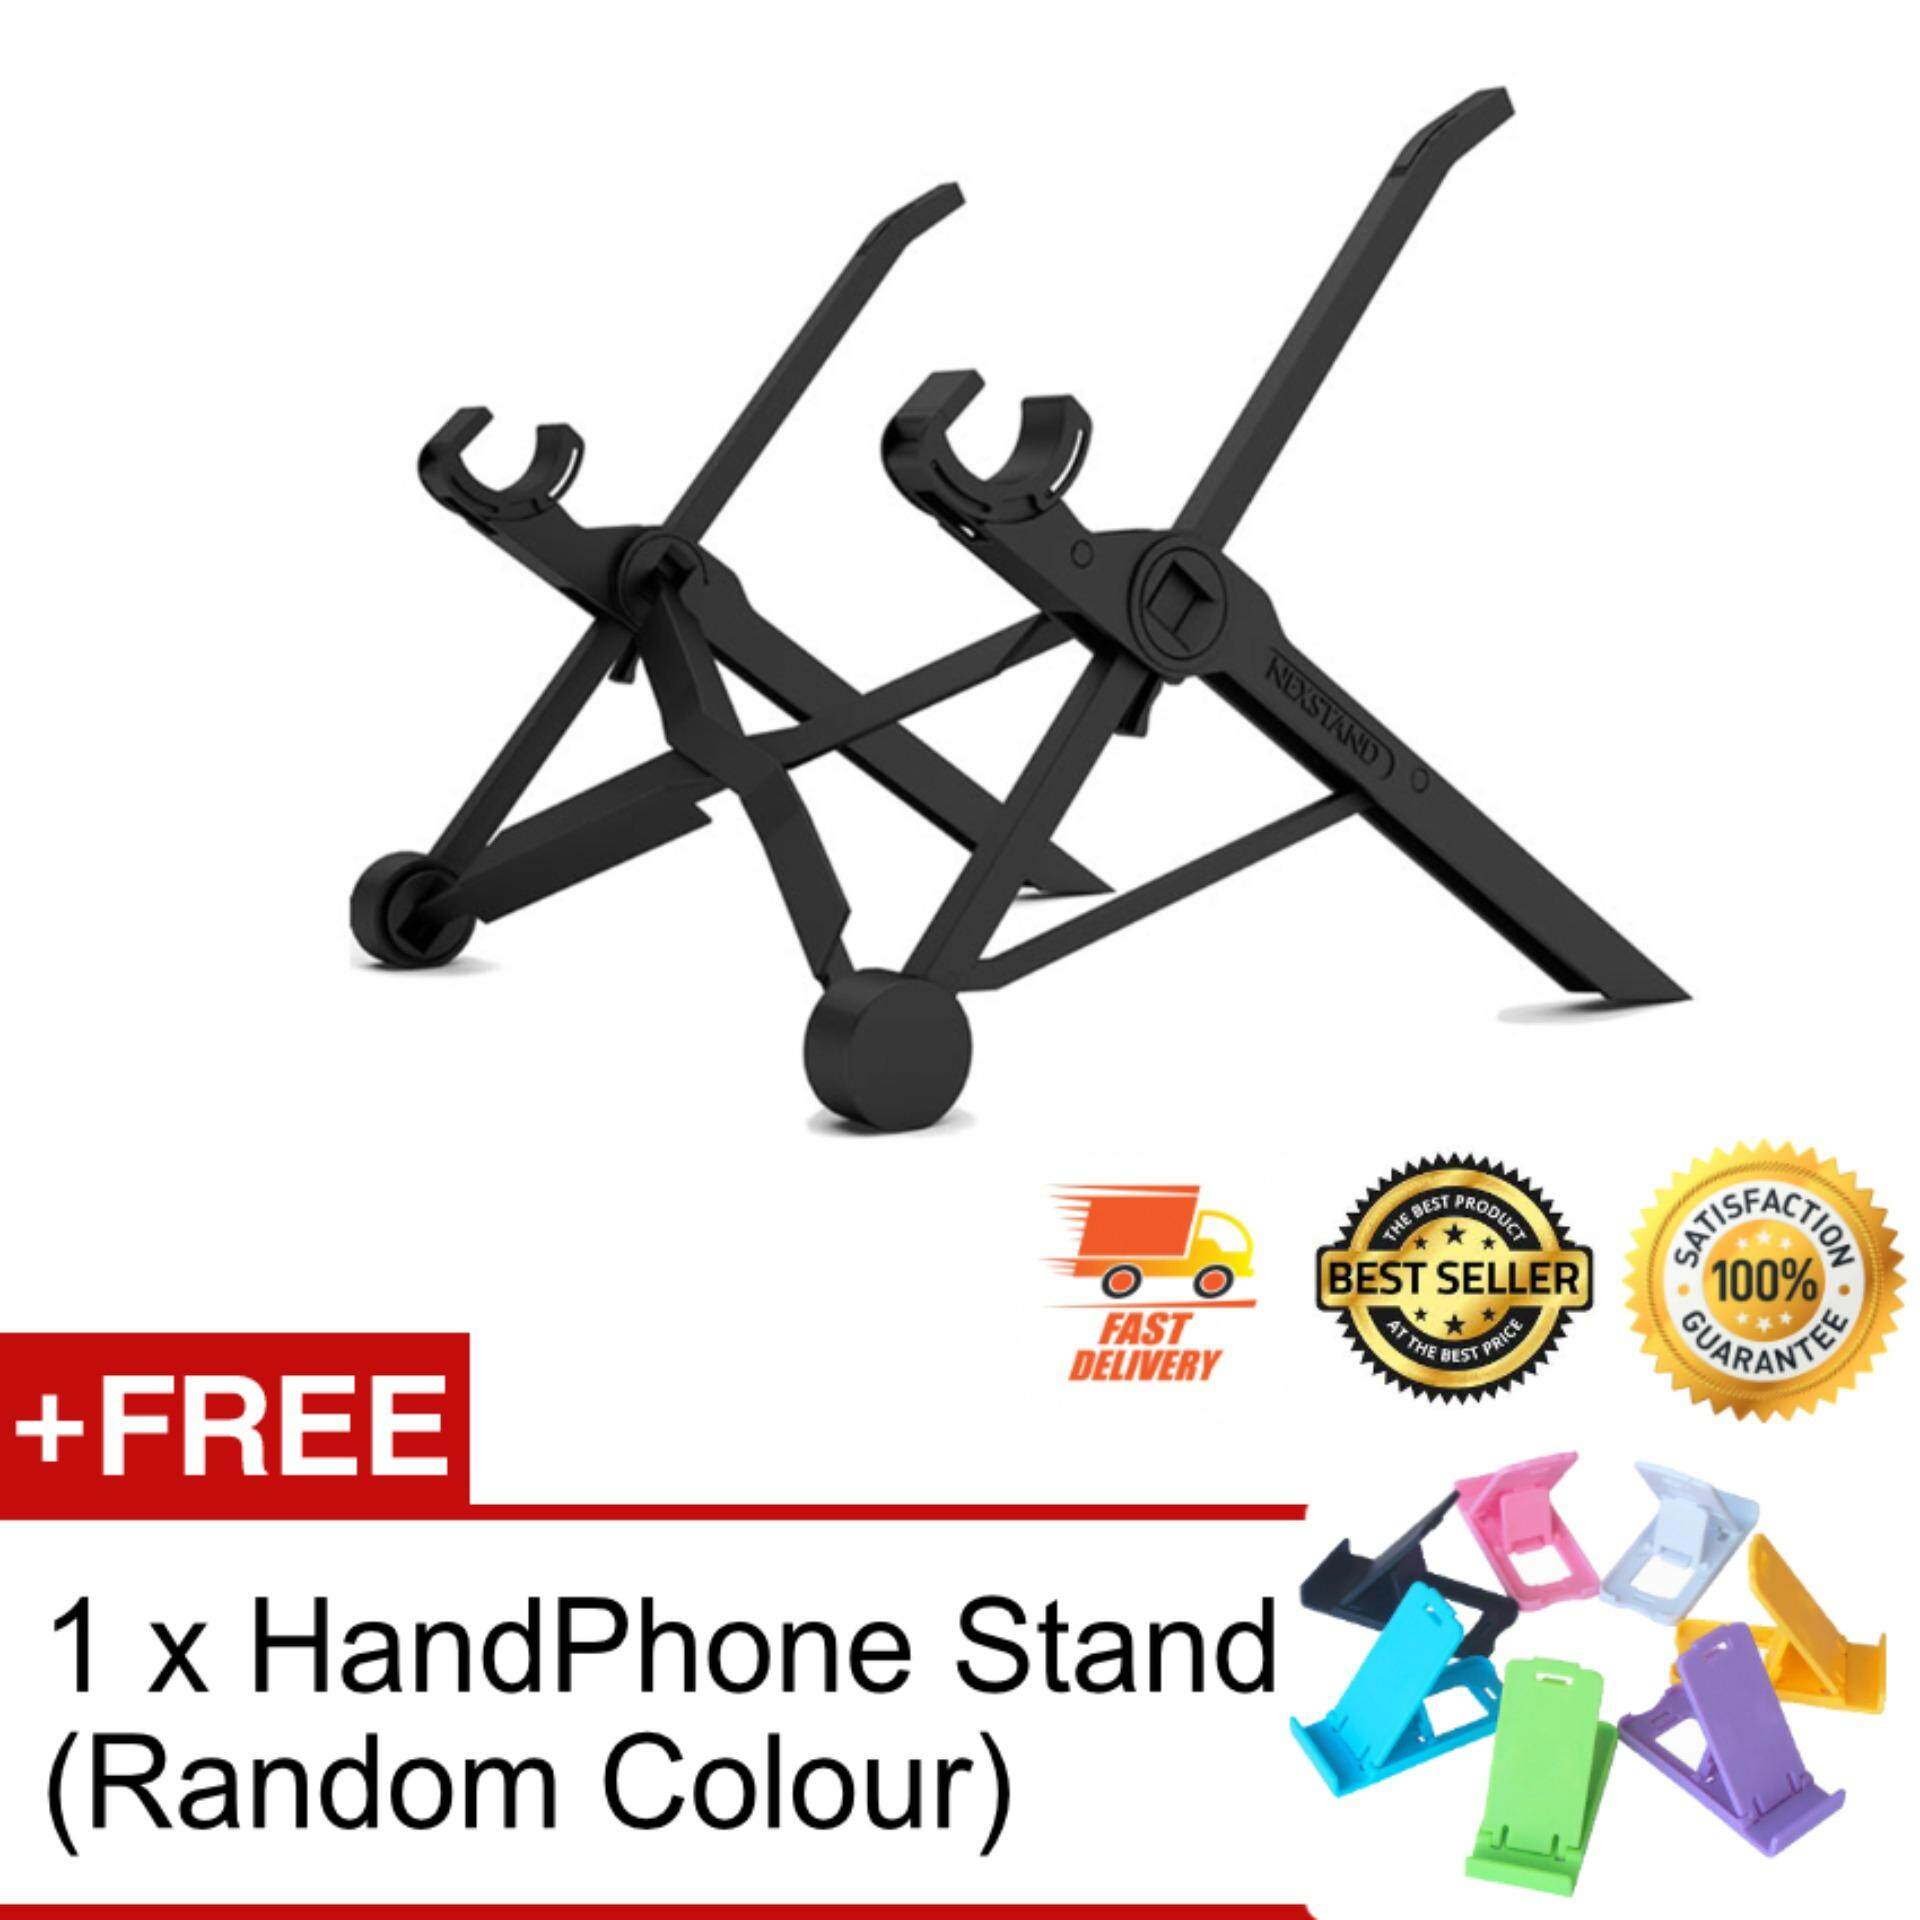 NEXSTAND K2 360 Adjustable Fordable Laptop Stand Eye-Level Ergonomic Laptop Stand Compact Portable Desk for Apple Macbook PC Laptop